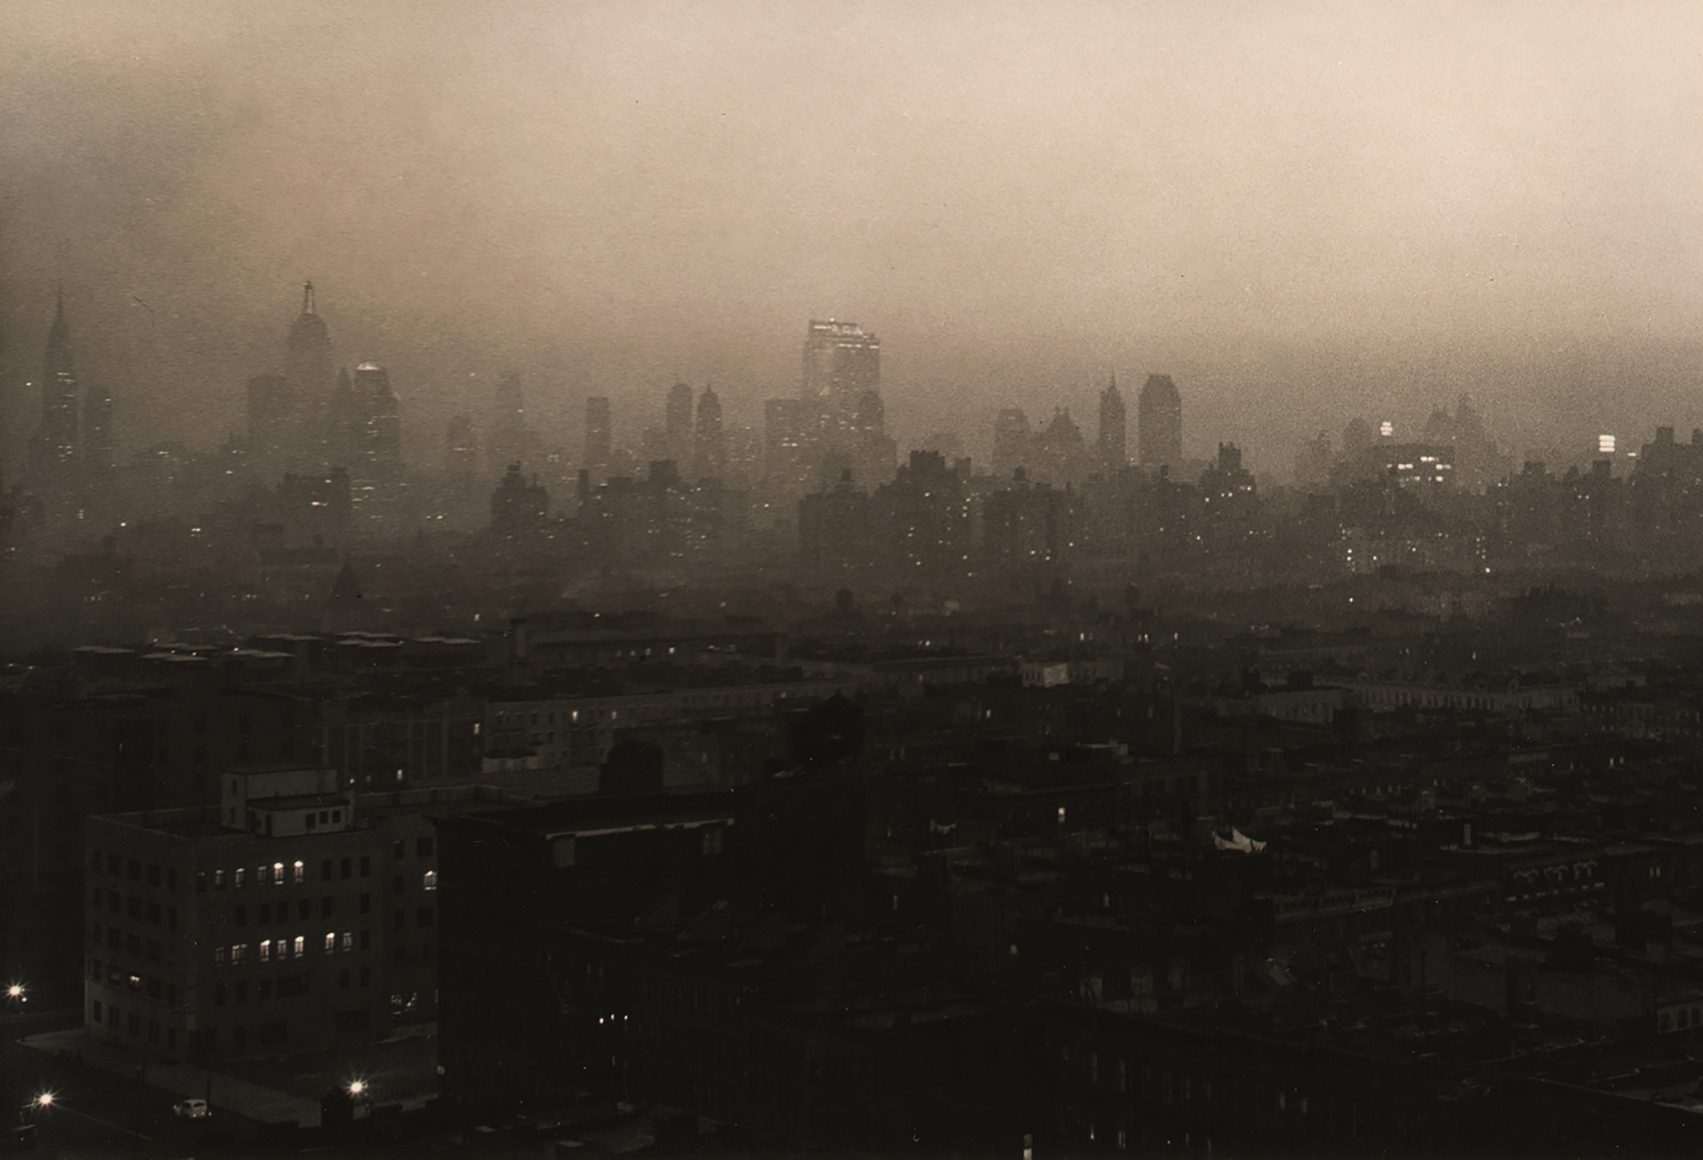 Paul J. Woolf, New York Skyline Evening Haze, c. 1936. Dark and hazy cityscape with skyscrapers in the distance silhouetted across the frame.